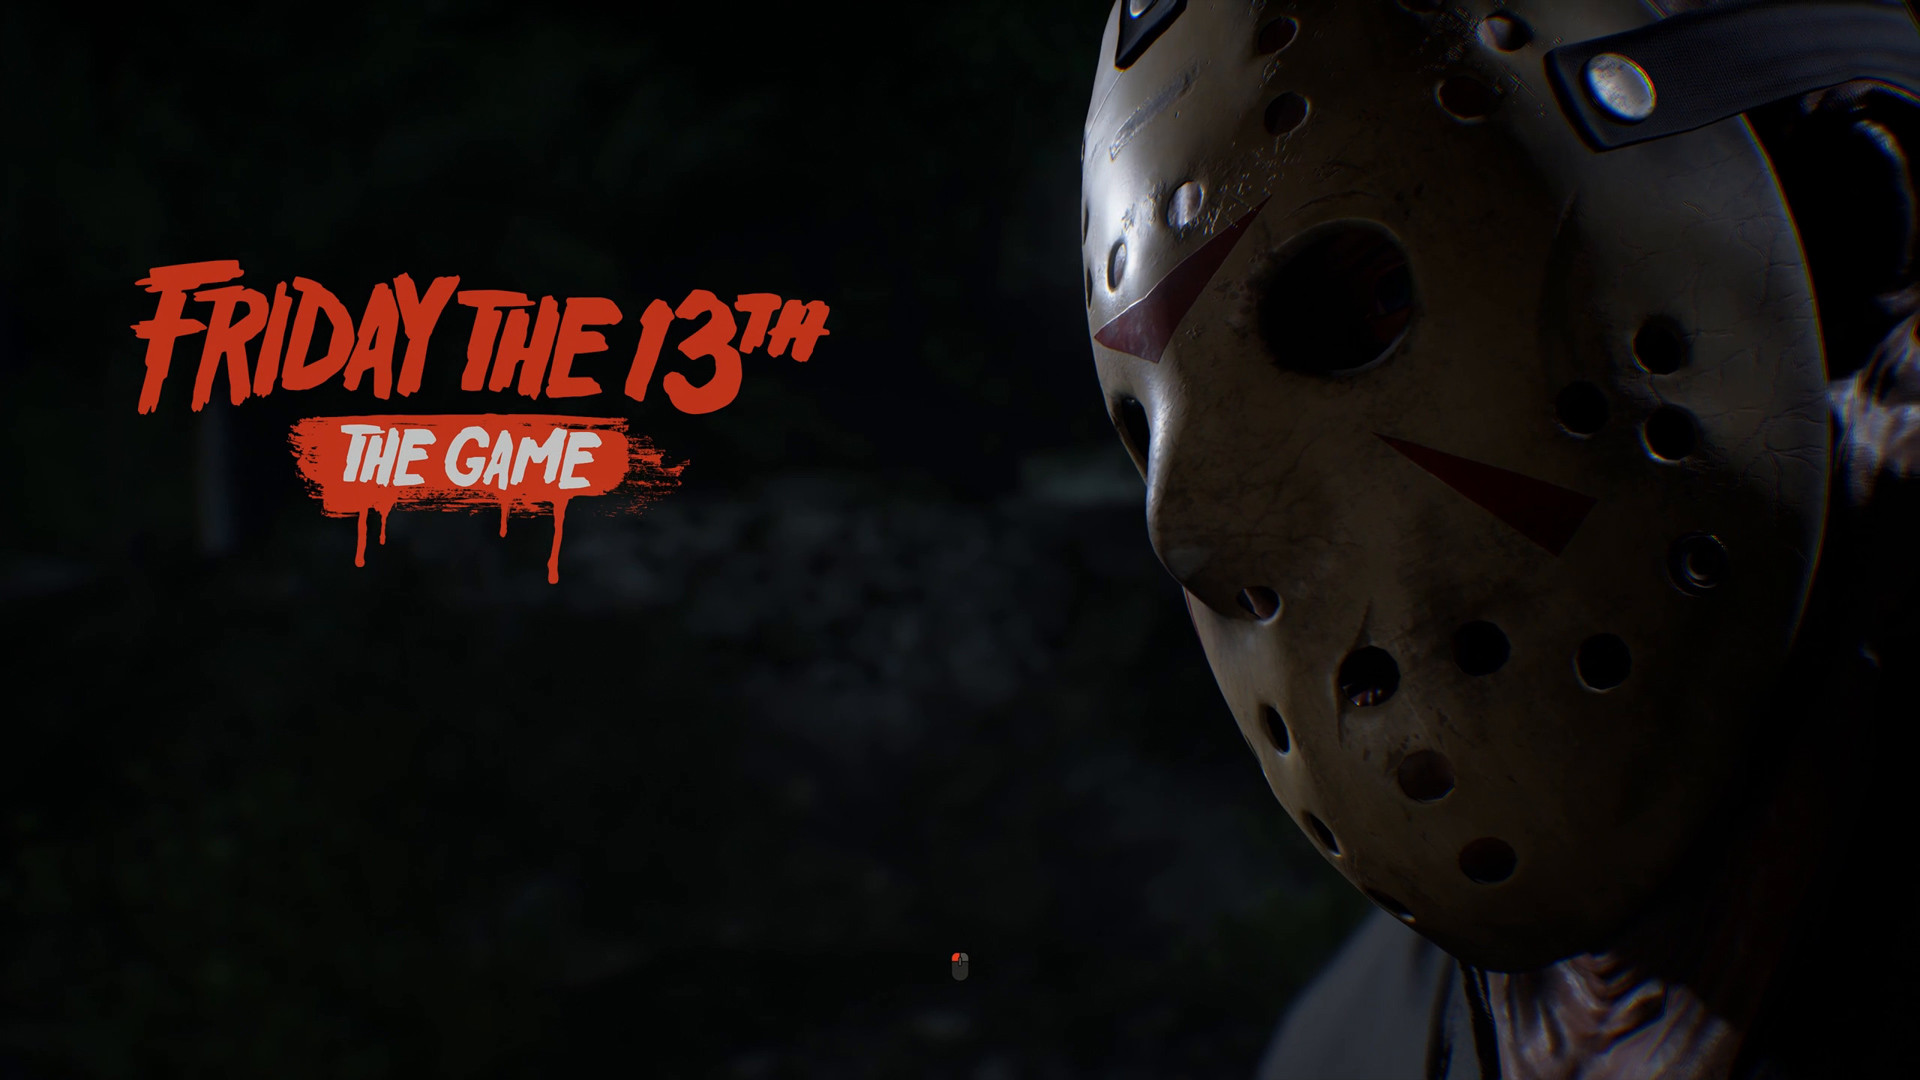 1920x1080 Jason z Friday the 13th: The Game Wallpaper from Friday the 13th: The Game